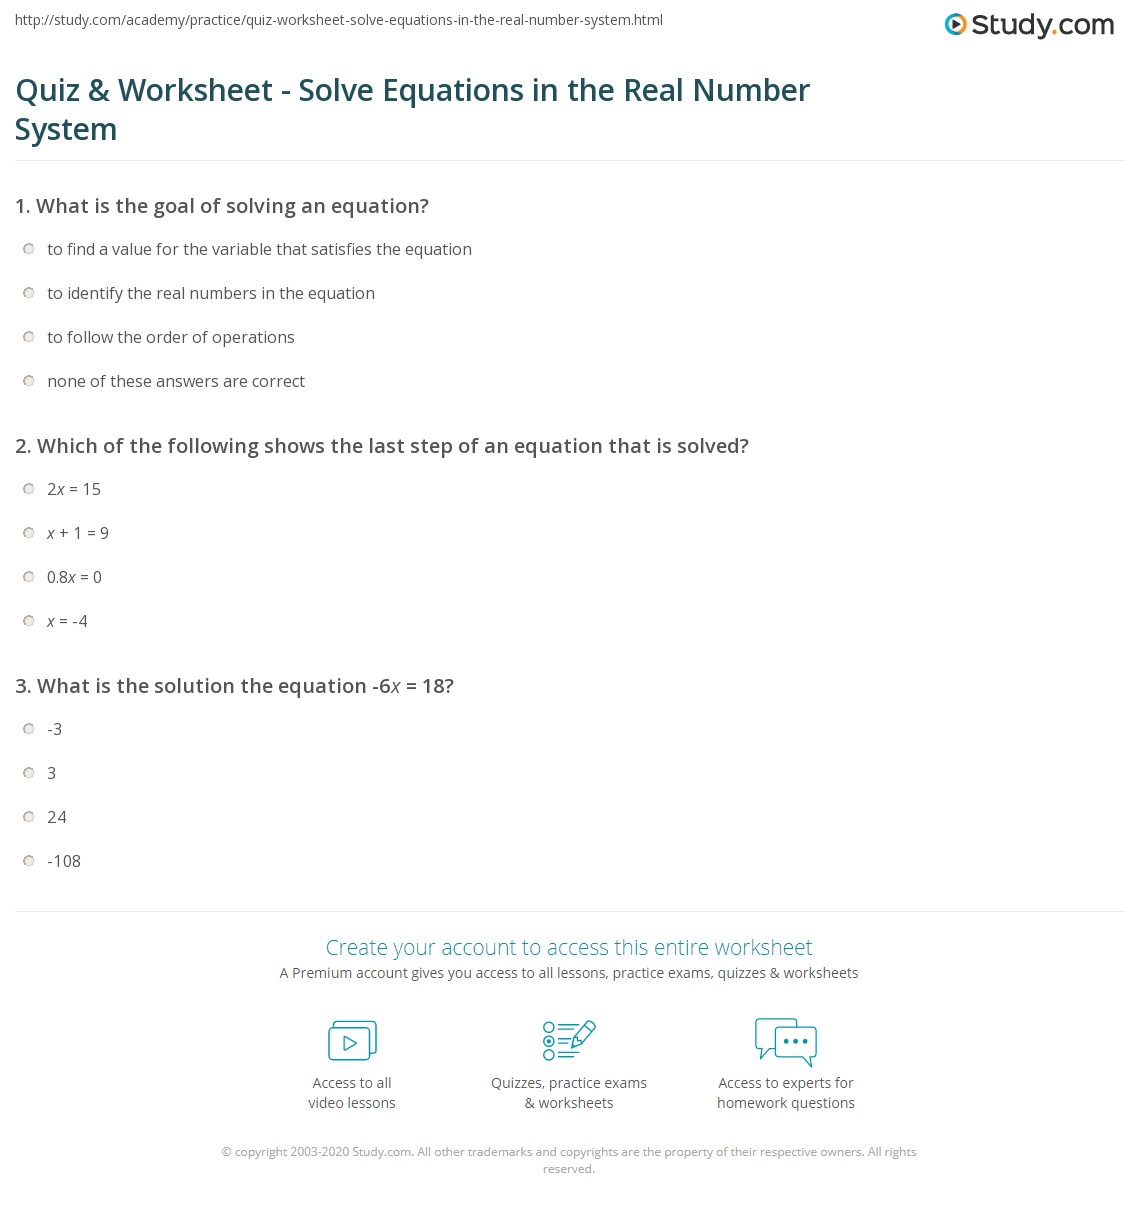 Worksheets Real Number System Worksheet quiz worksheet solve equations in the real number system study com print solving worksheet